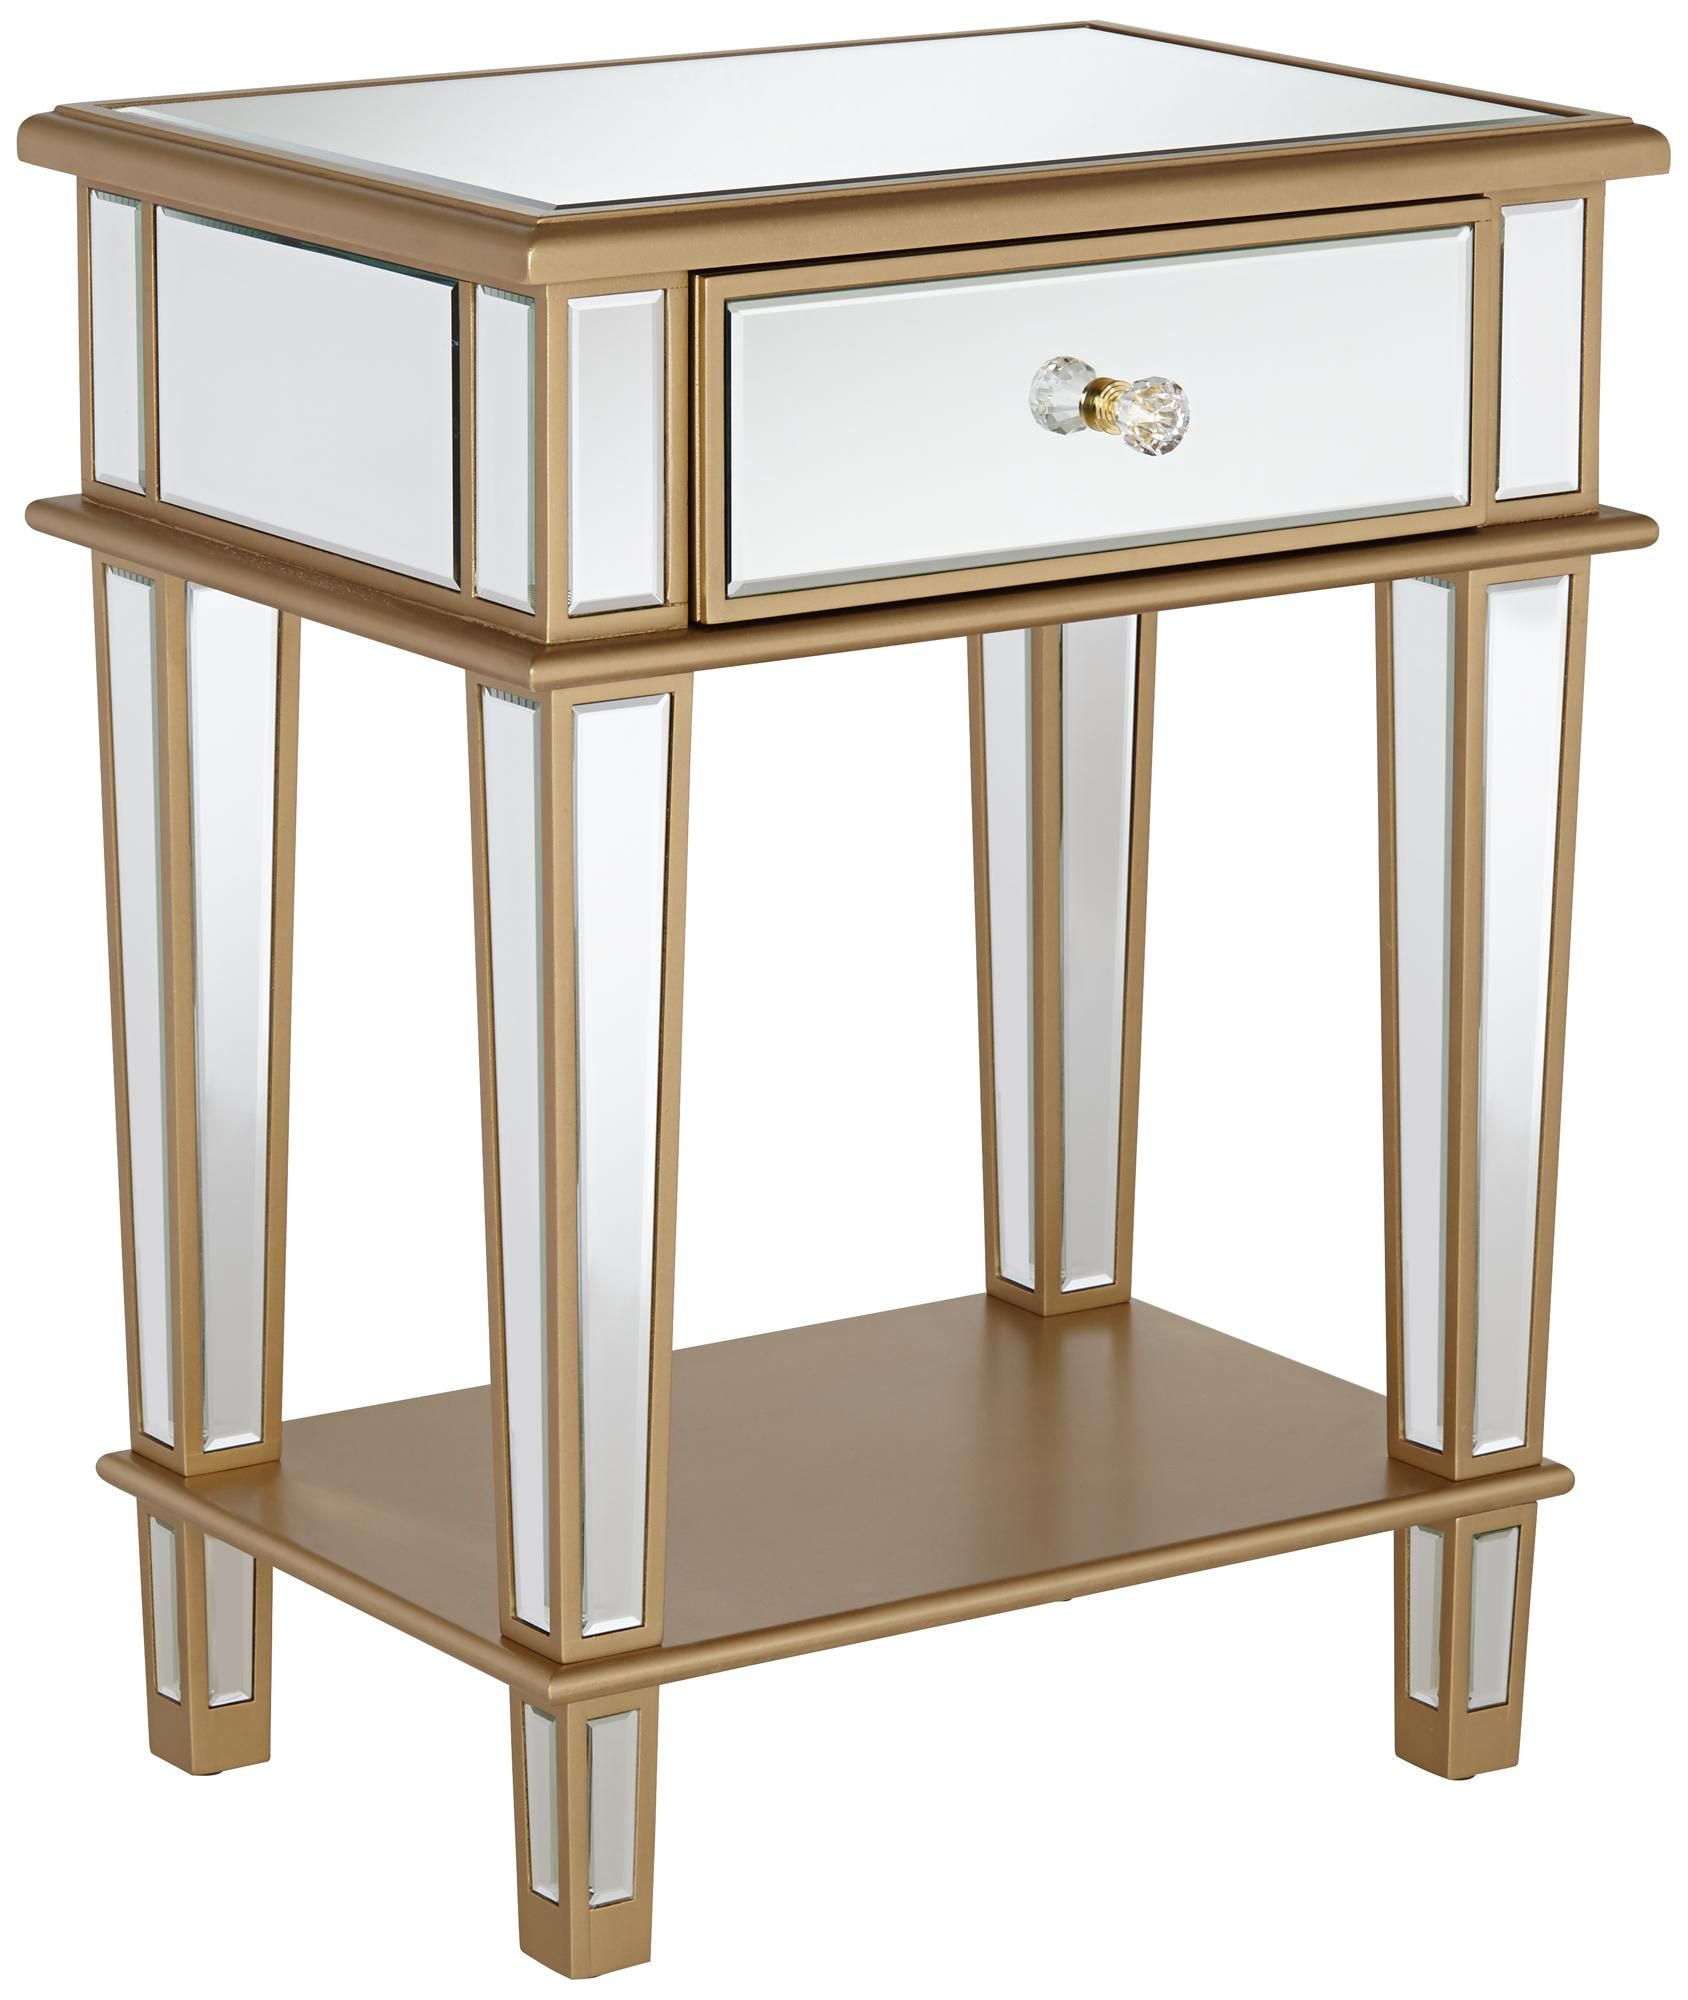 joslyn drawer gold mirrored end table apartment accessories accent with small battery powered lamps book stand vintage round oak champagne furniture white and silver coffee unique